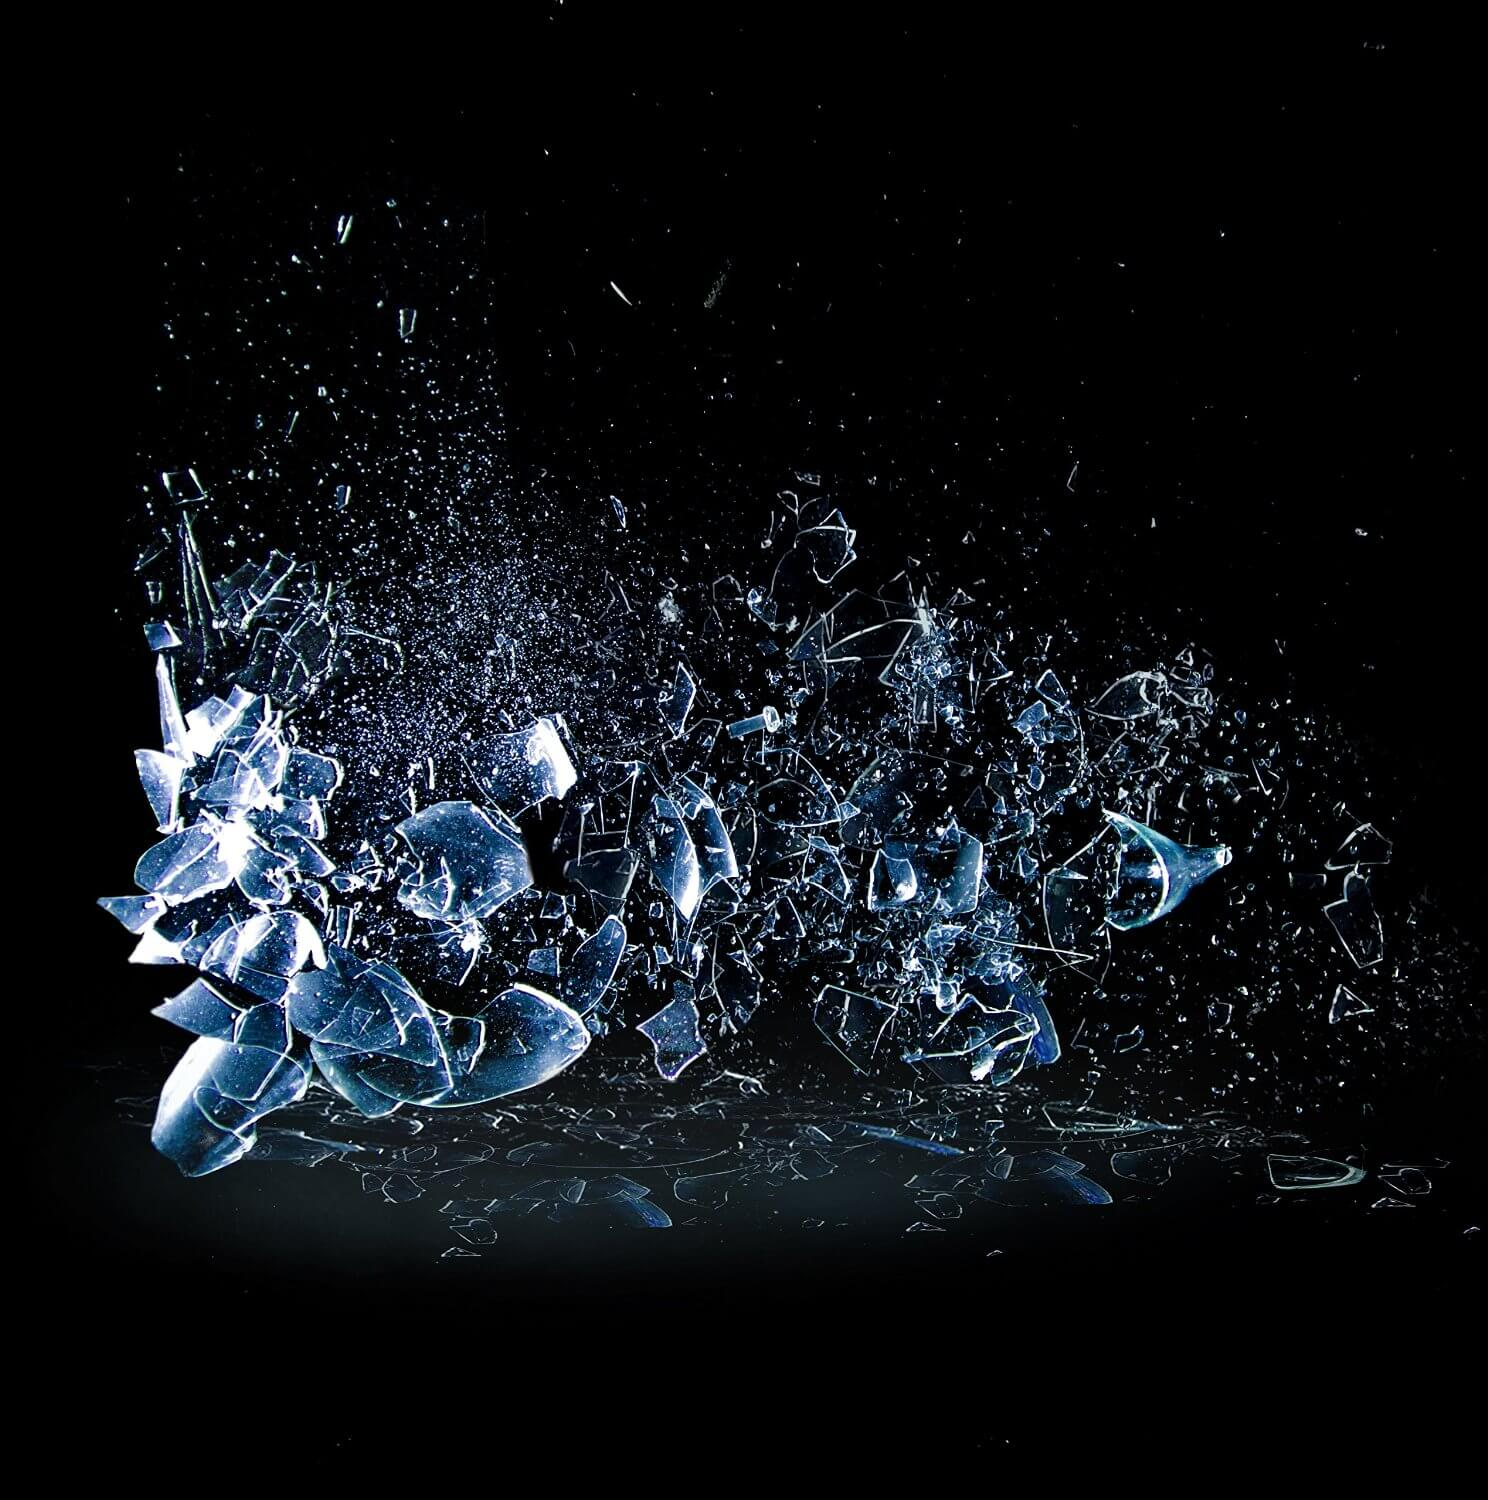 The Dillinger Escape Plan - Symptom Of Terminal Illness [single] (2016)